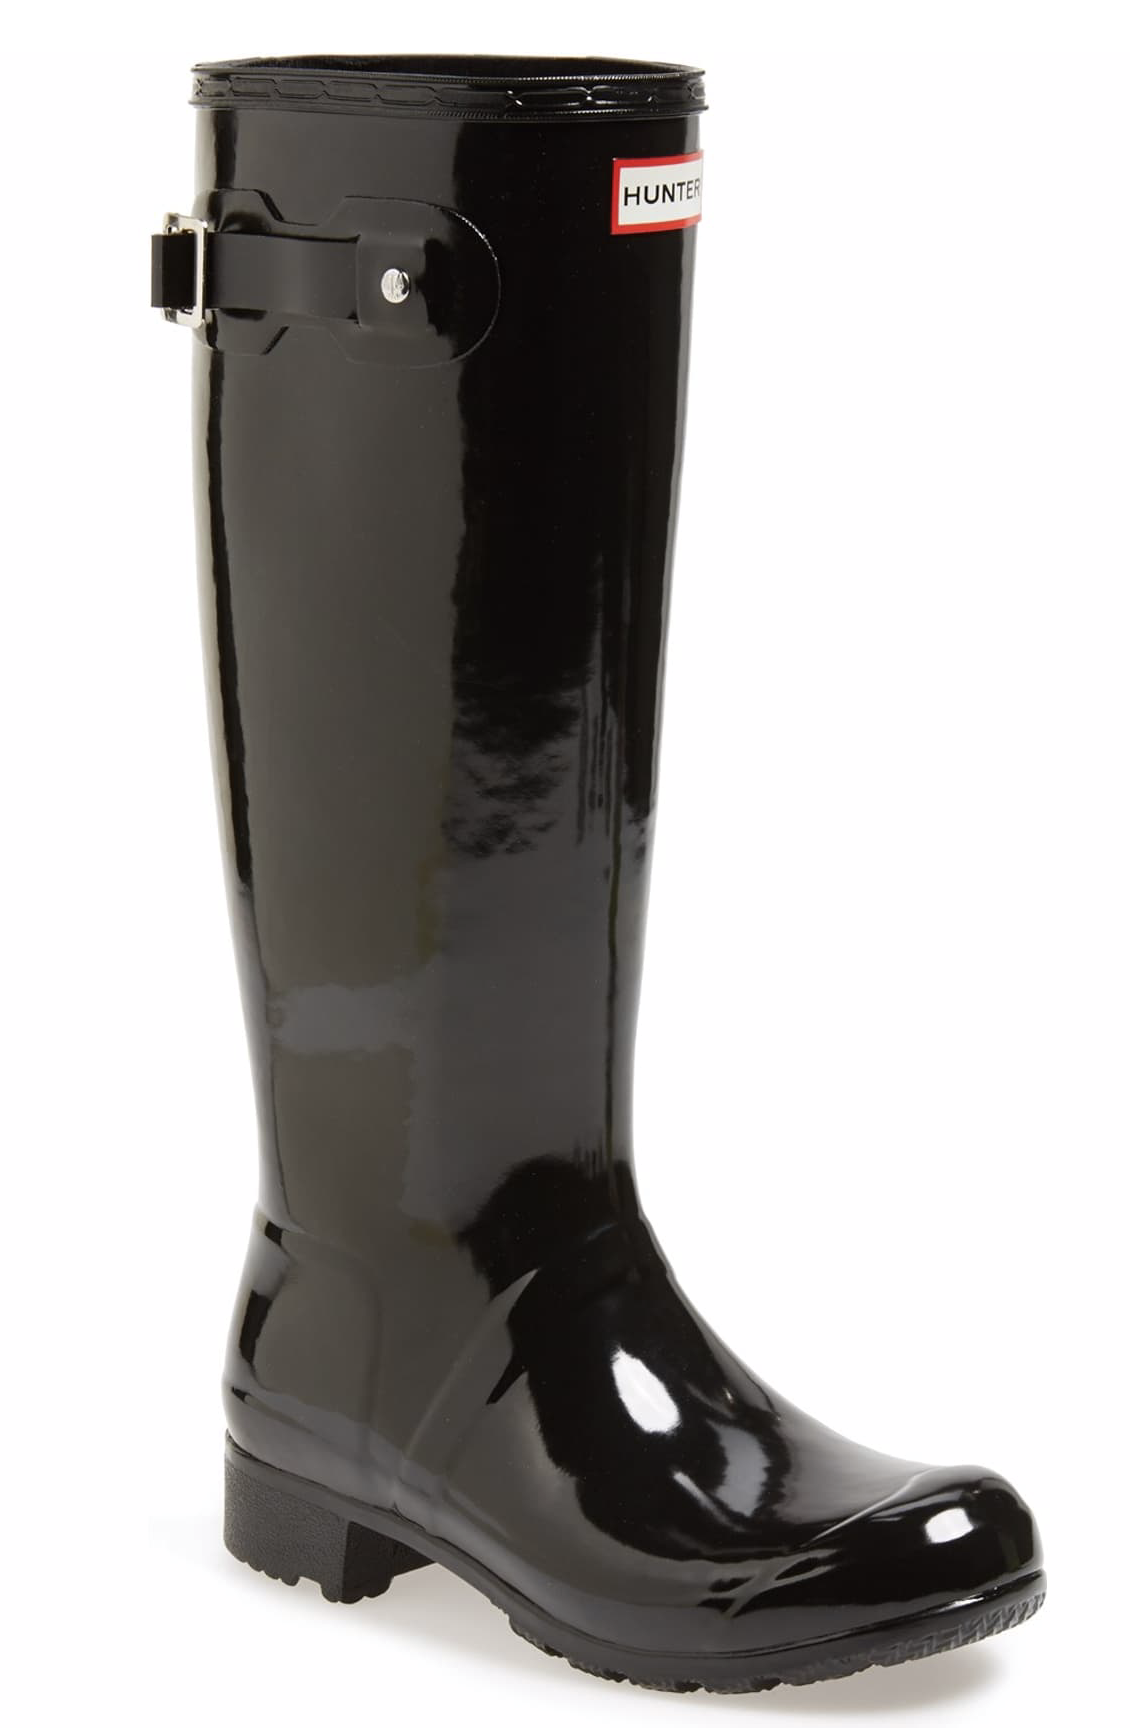 Hunter Original Tour Gloss Packable Rain Boot - $99.90